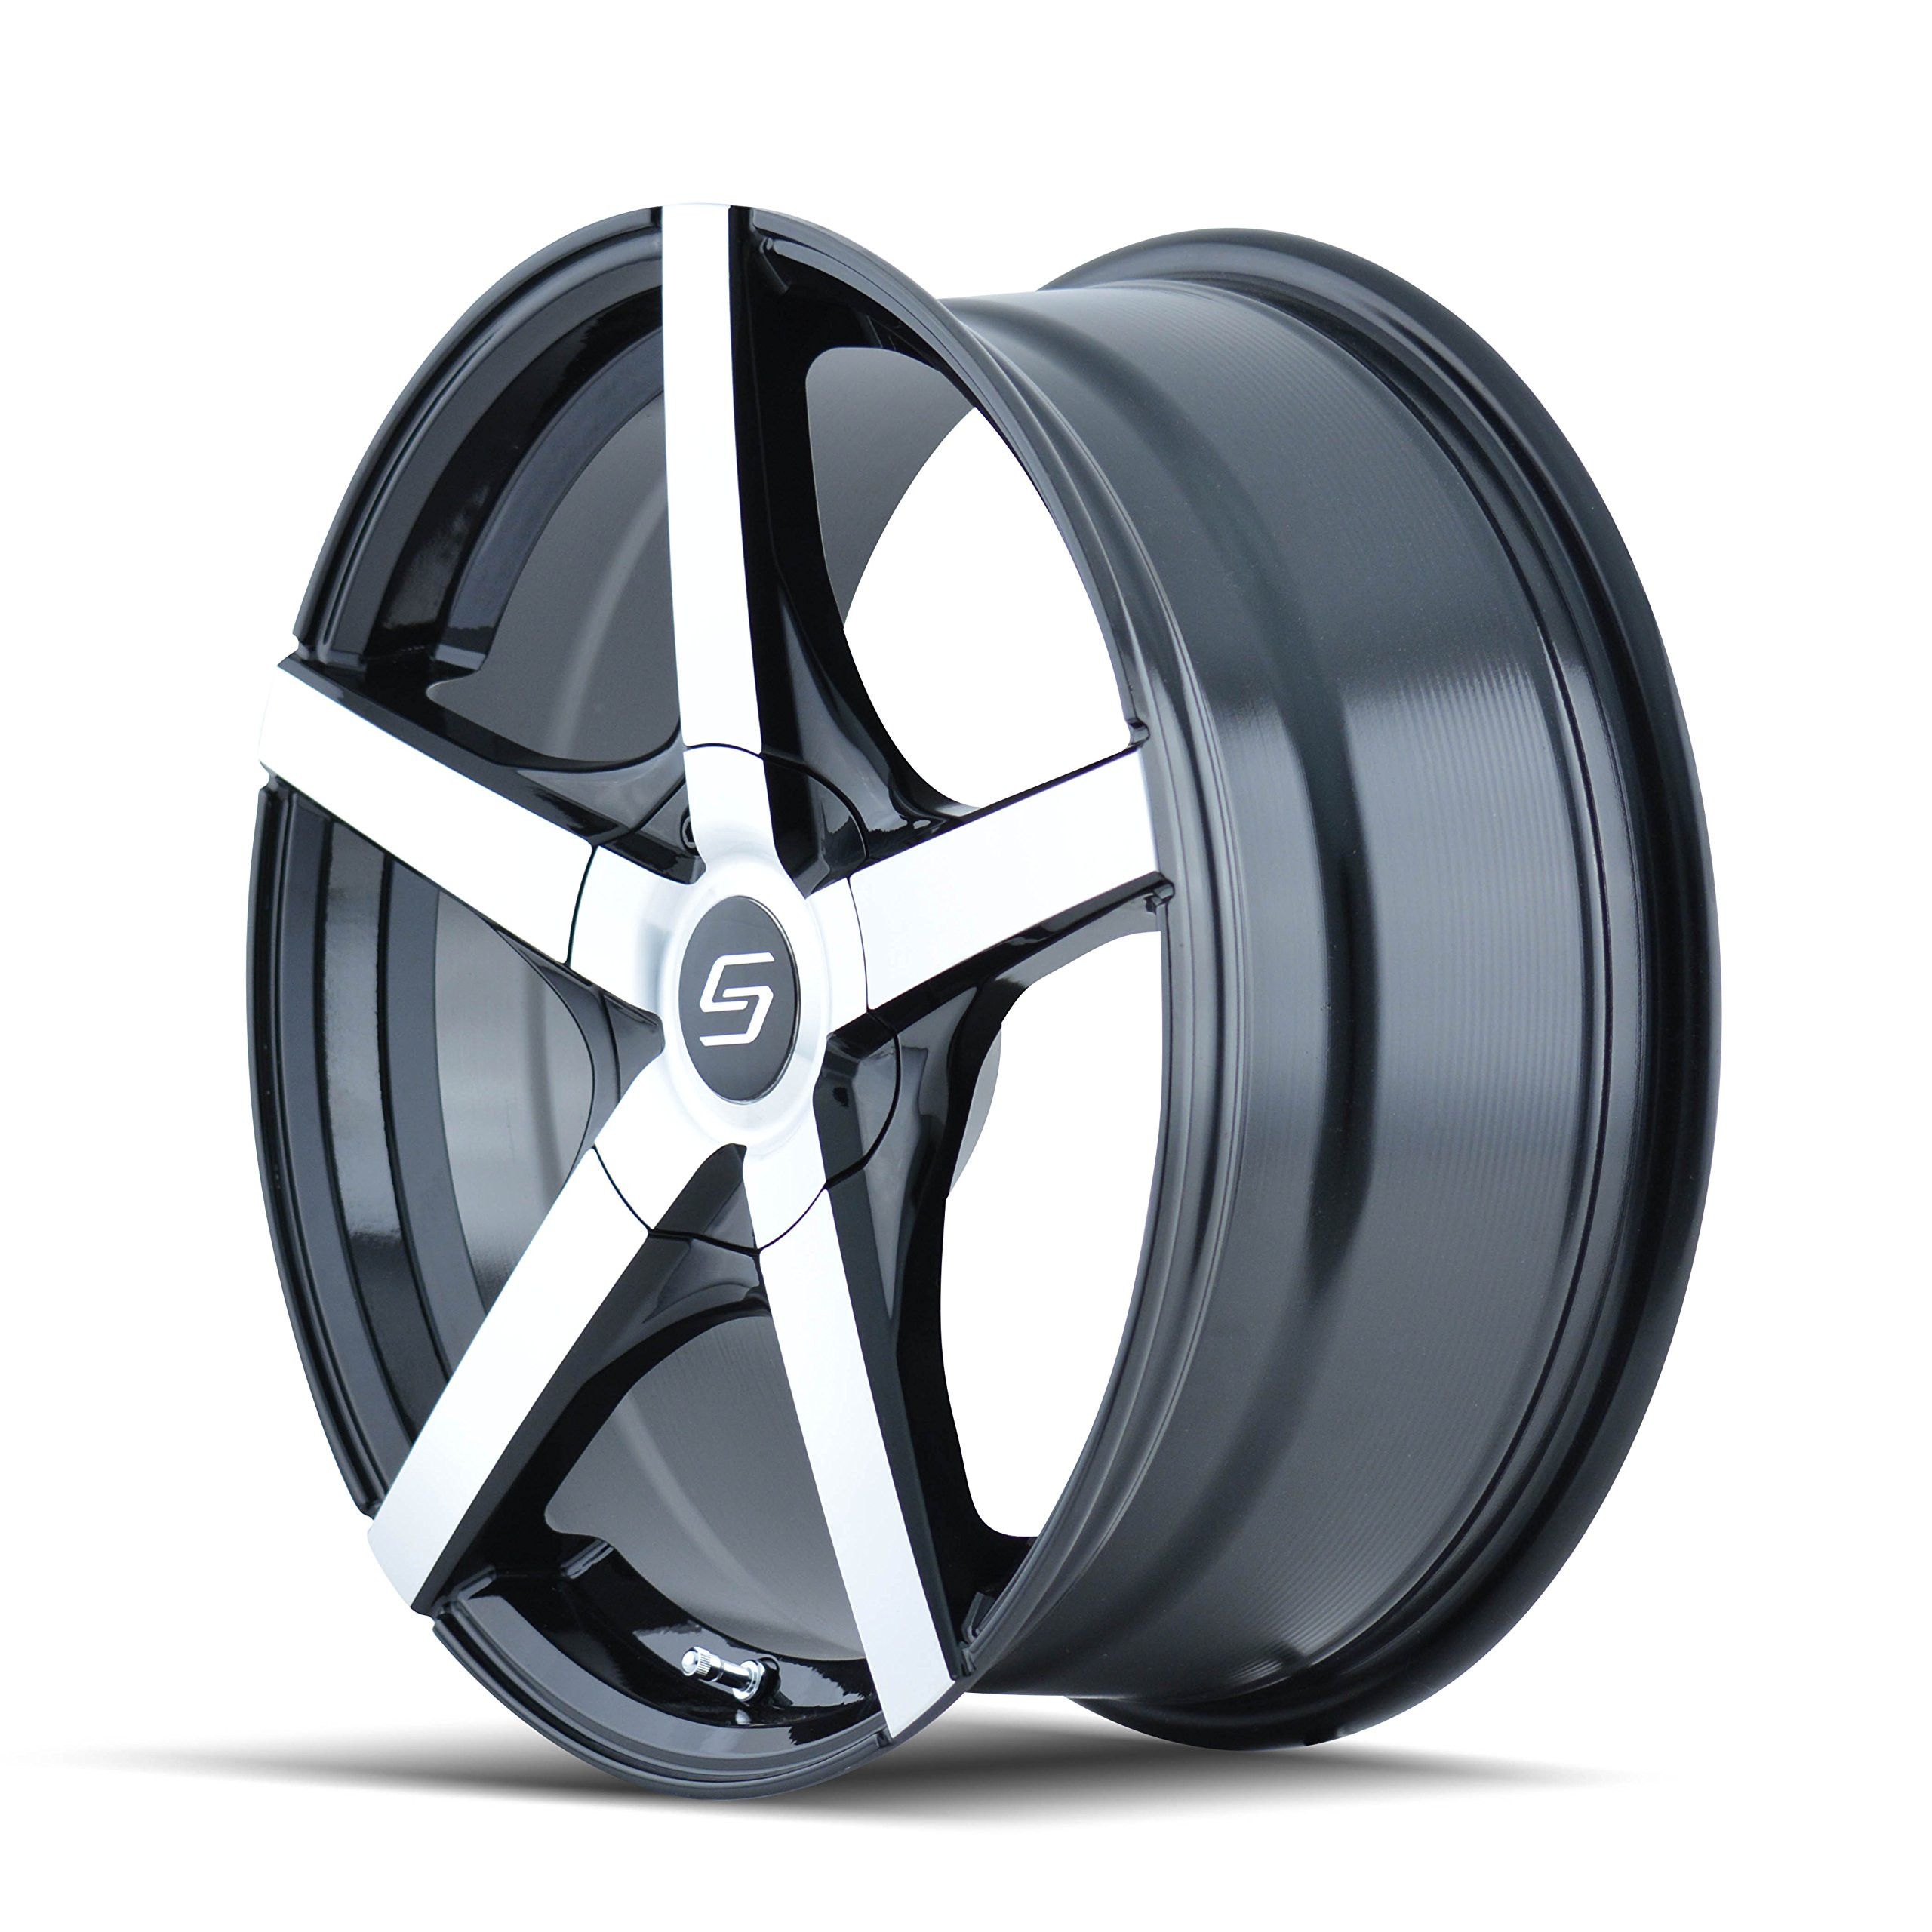 Sacchi S72 272 Black Wheel with Machined Face (18x7.5''/10x110mm)